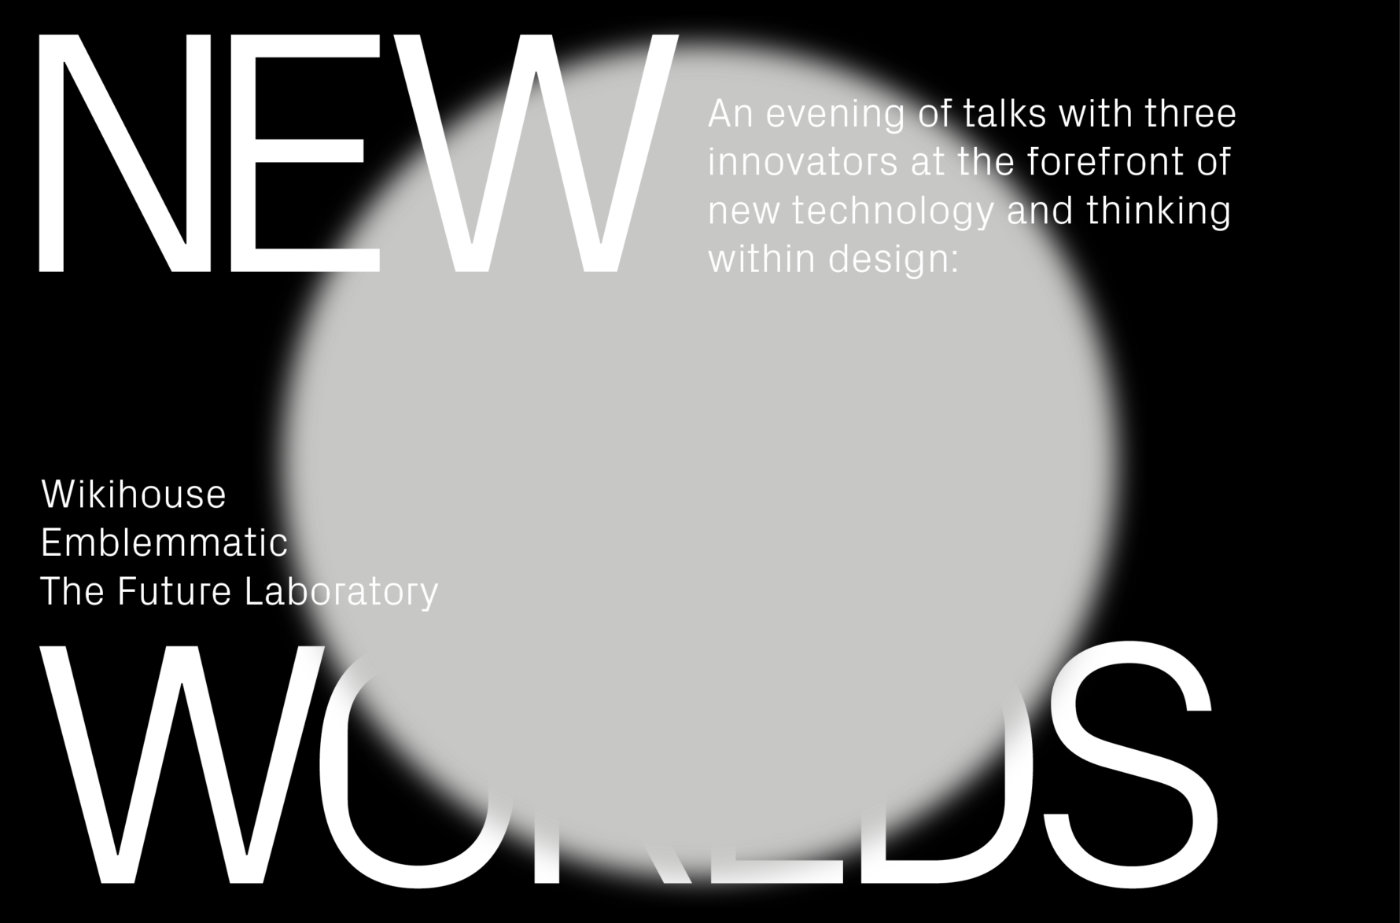 new-worlds-graphic-design-festival-scotland-1800x1200-1780x1174.png